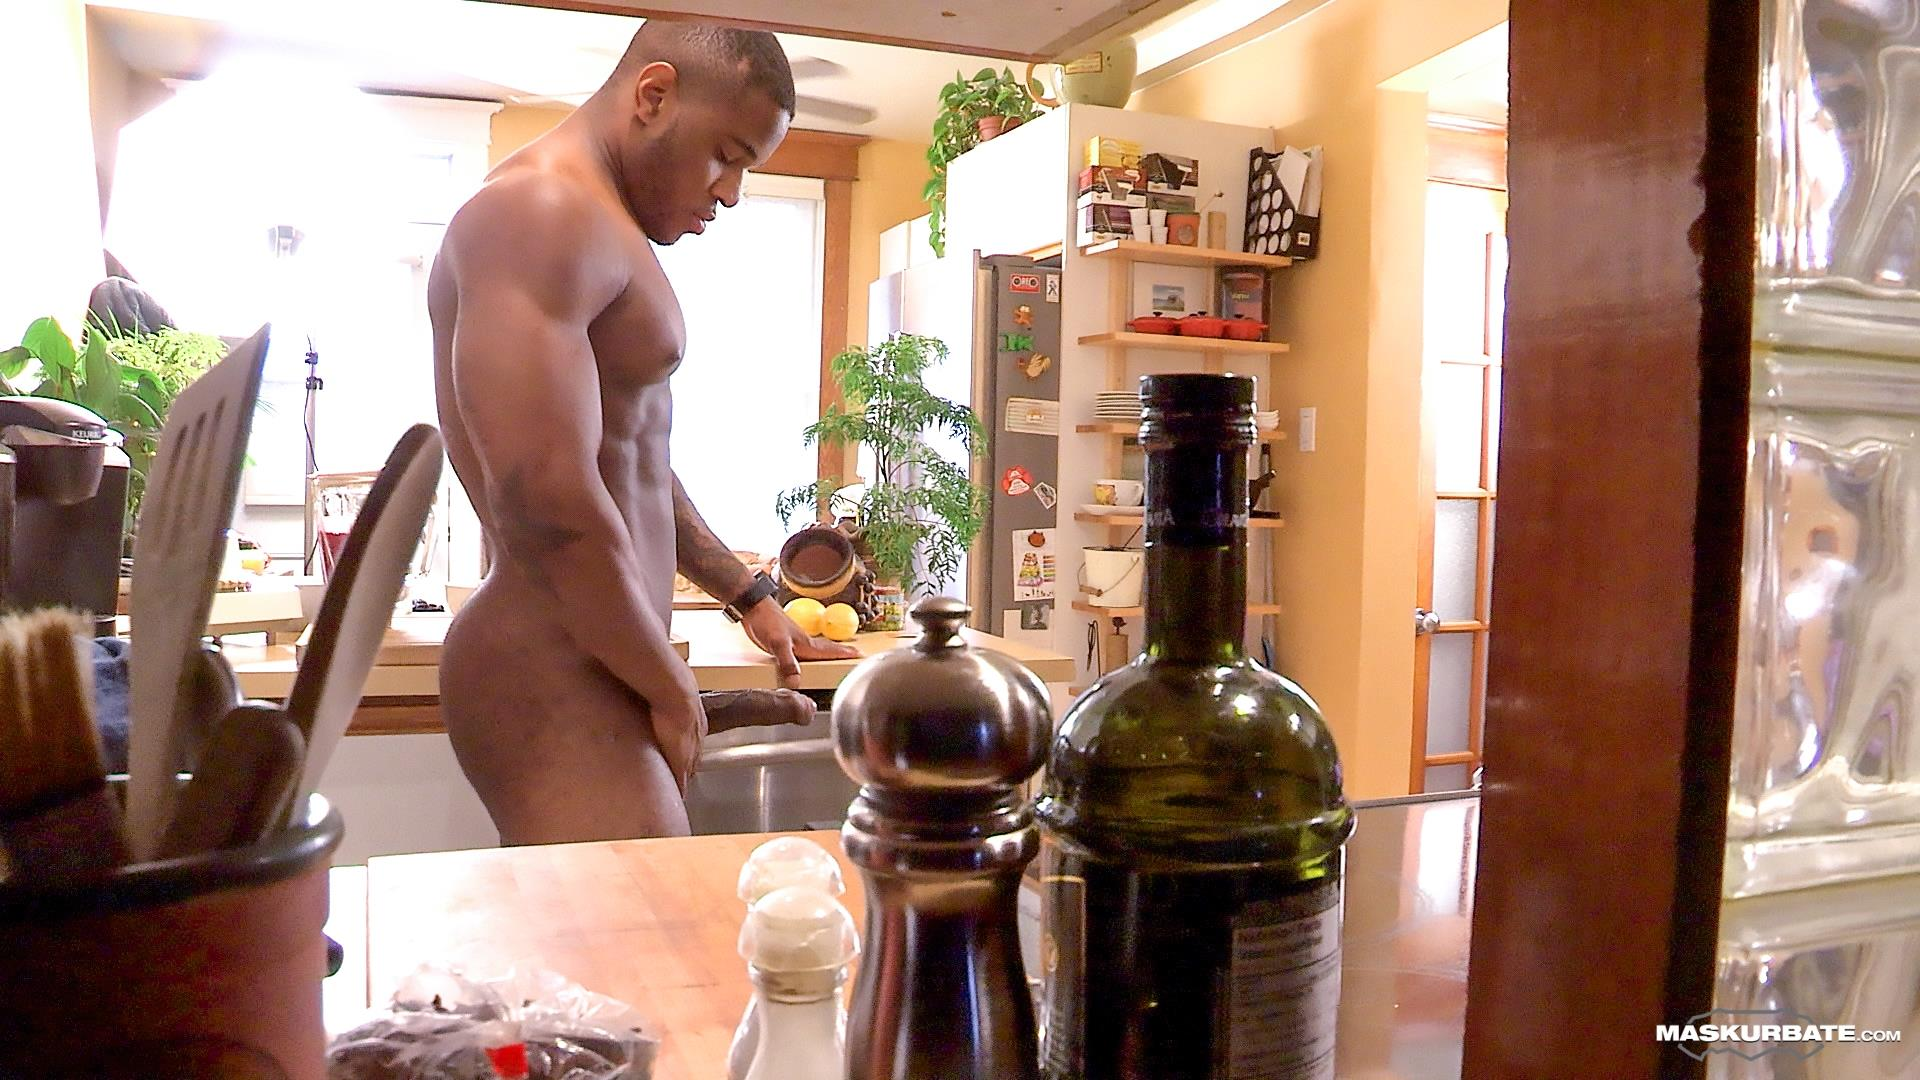 Maskurbate-Adam-Black-Muscle-Guy-Jerking-His-Big-Black-Uncut-Cock-Amateur-Gay-Porn-10 Black Bodybuilder Strokes His Big Black Uncut Cock